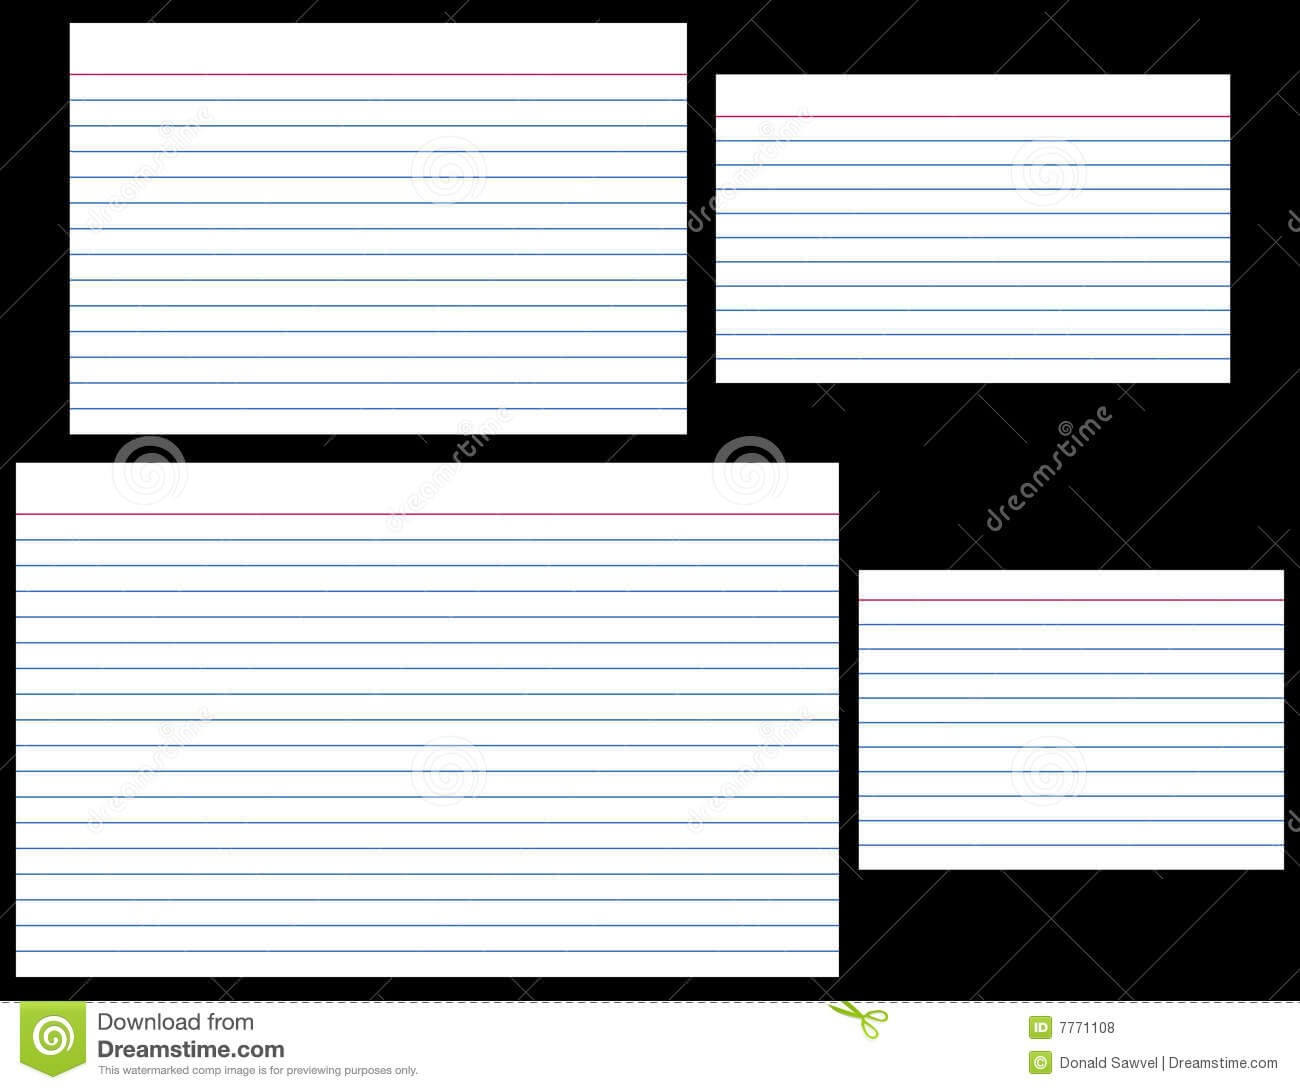 4 X 6 Note Card Template   Brainmaxx With Regard To 4X6 Note Card Template